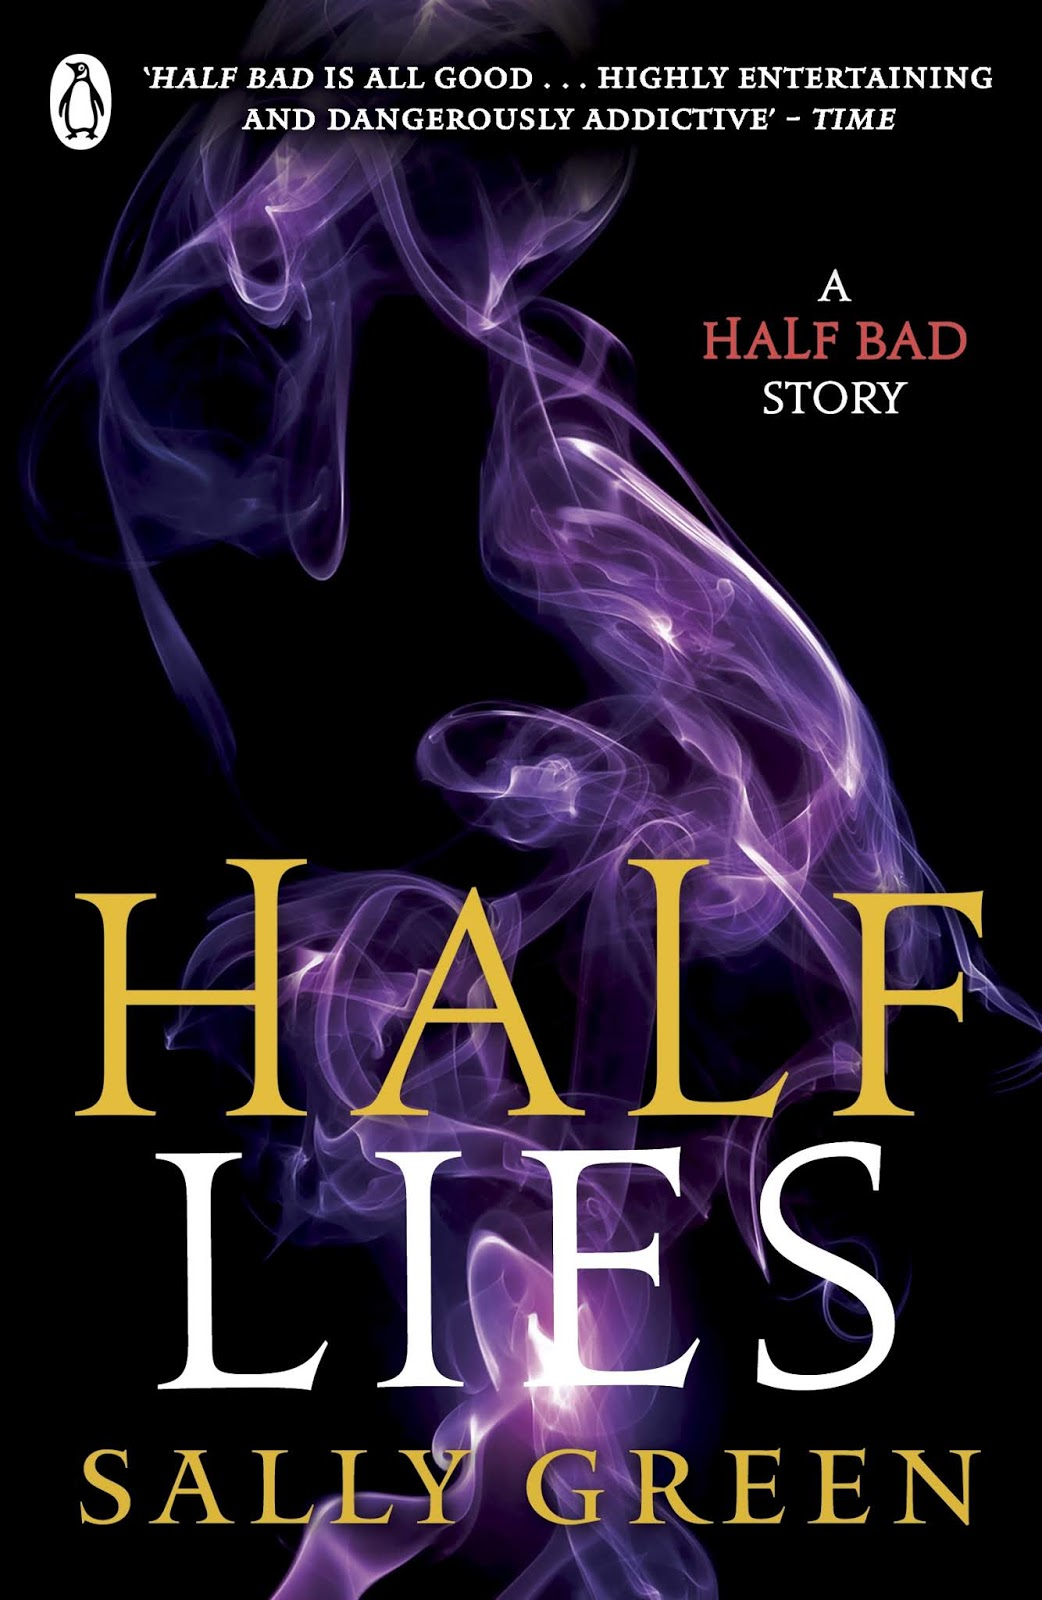 Half Lies by Sally Green | Book Review | Superior Young Adult Fiction